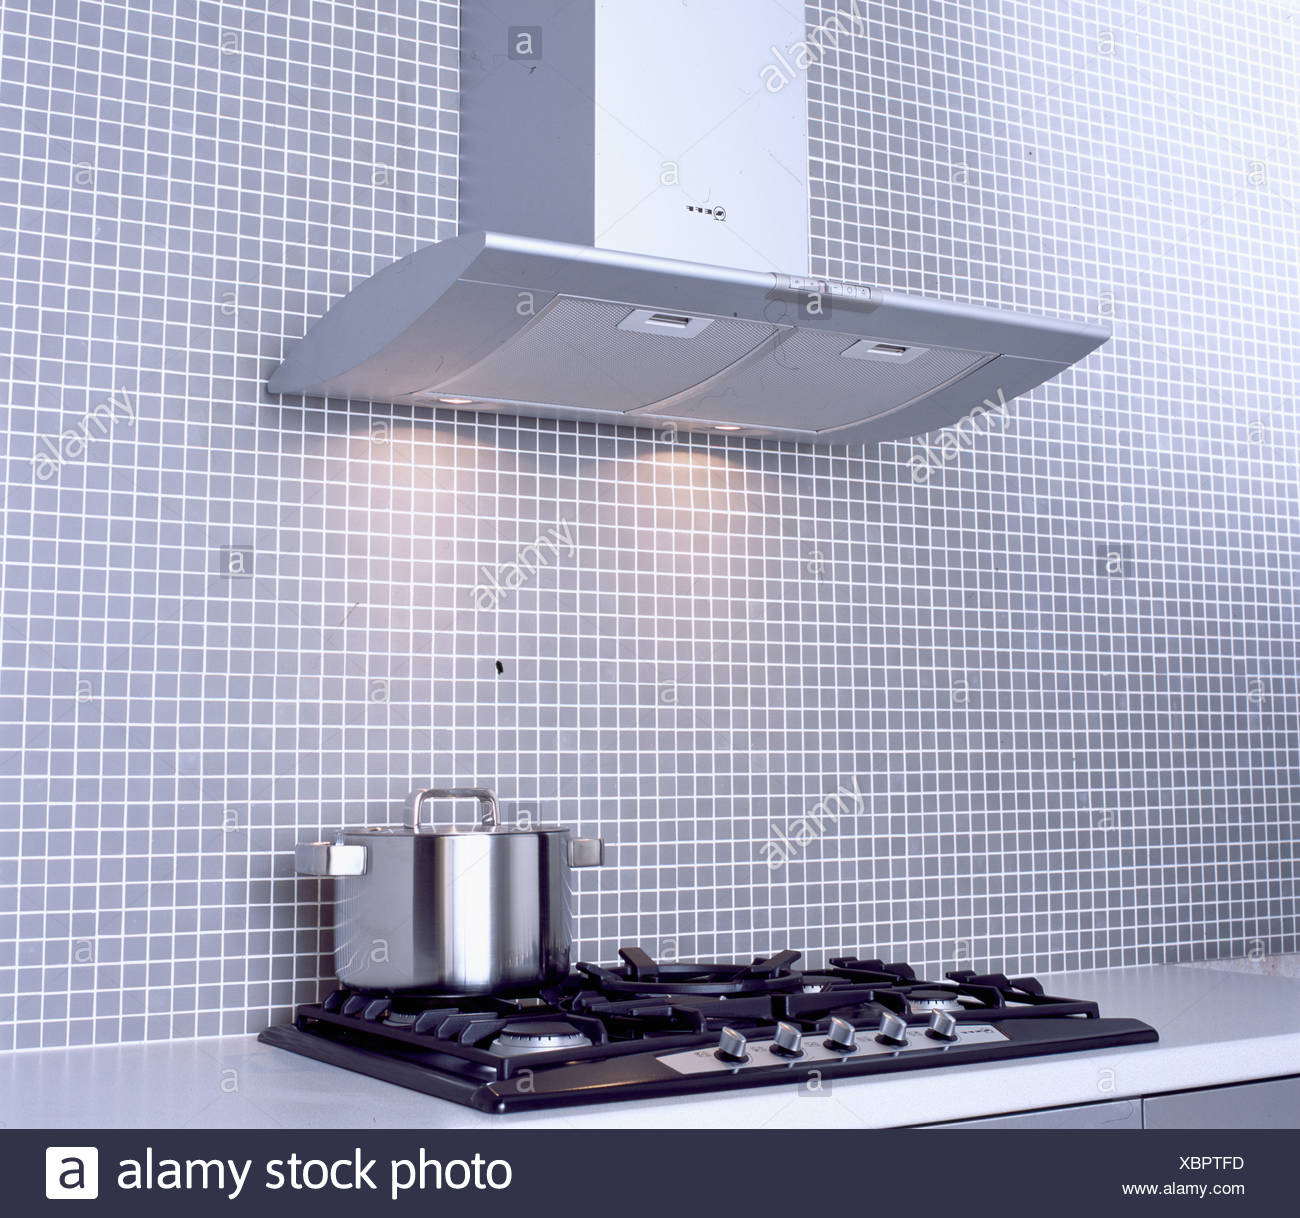 Close Up Of Extractor Fan Above Stainless Steel Pan On Black Hob In Modern Kitchen With Mosaic Tiled Wall Stock Photo Alamy